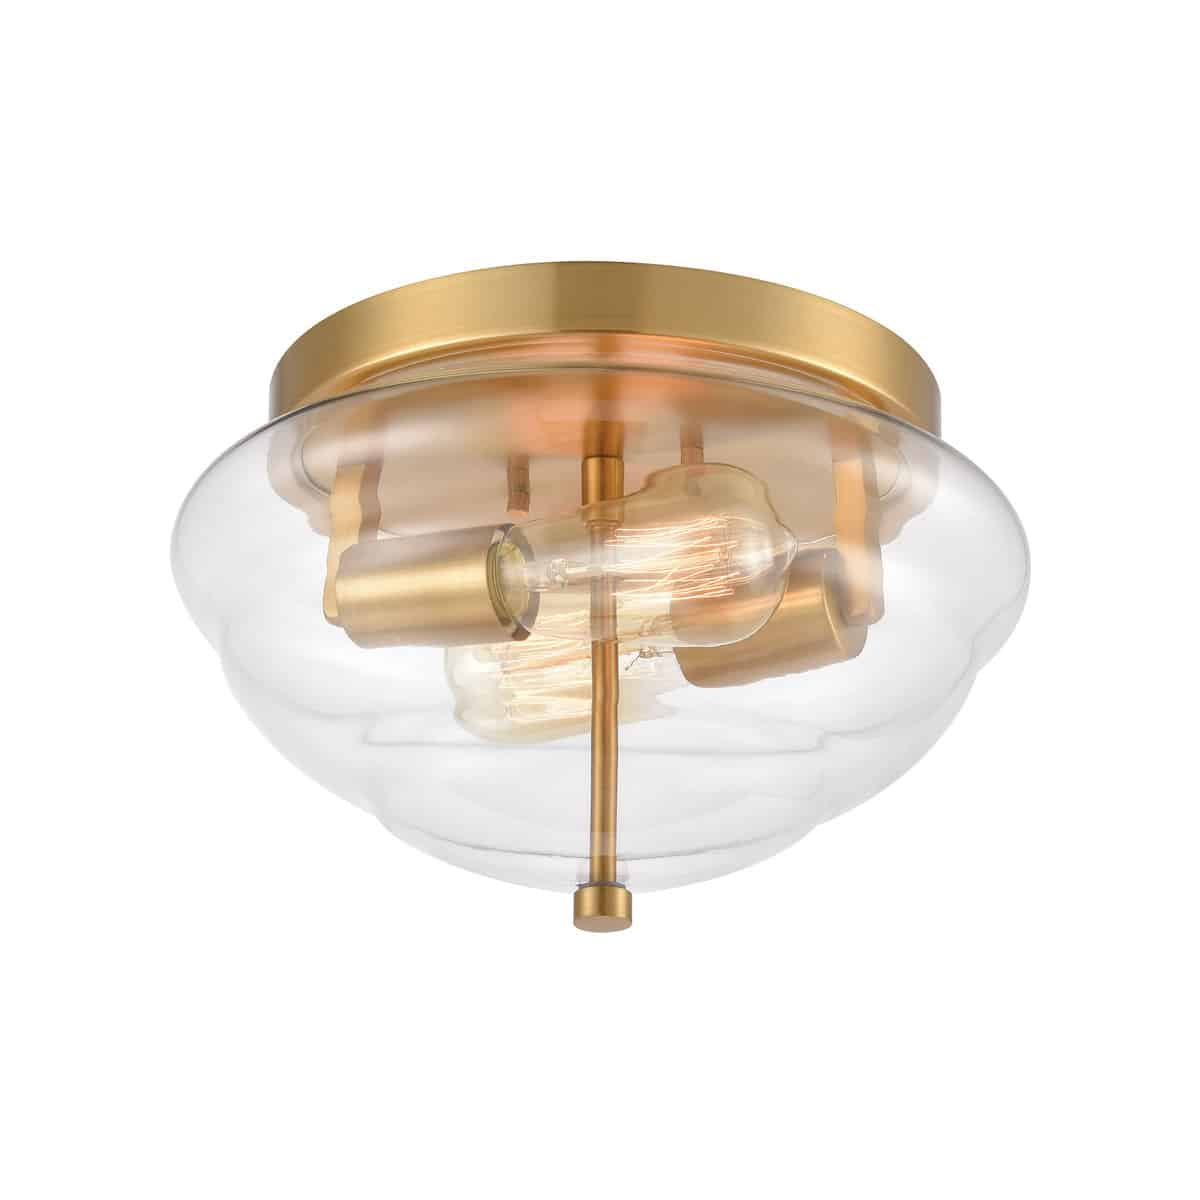 EL-46554/2_Flush mount in Brushed Brass with clear glass.